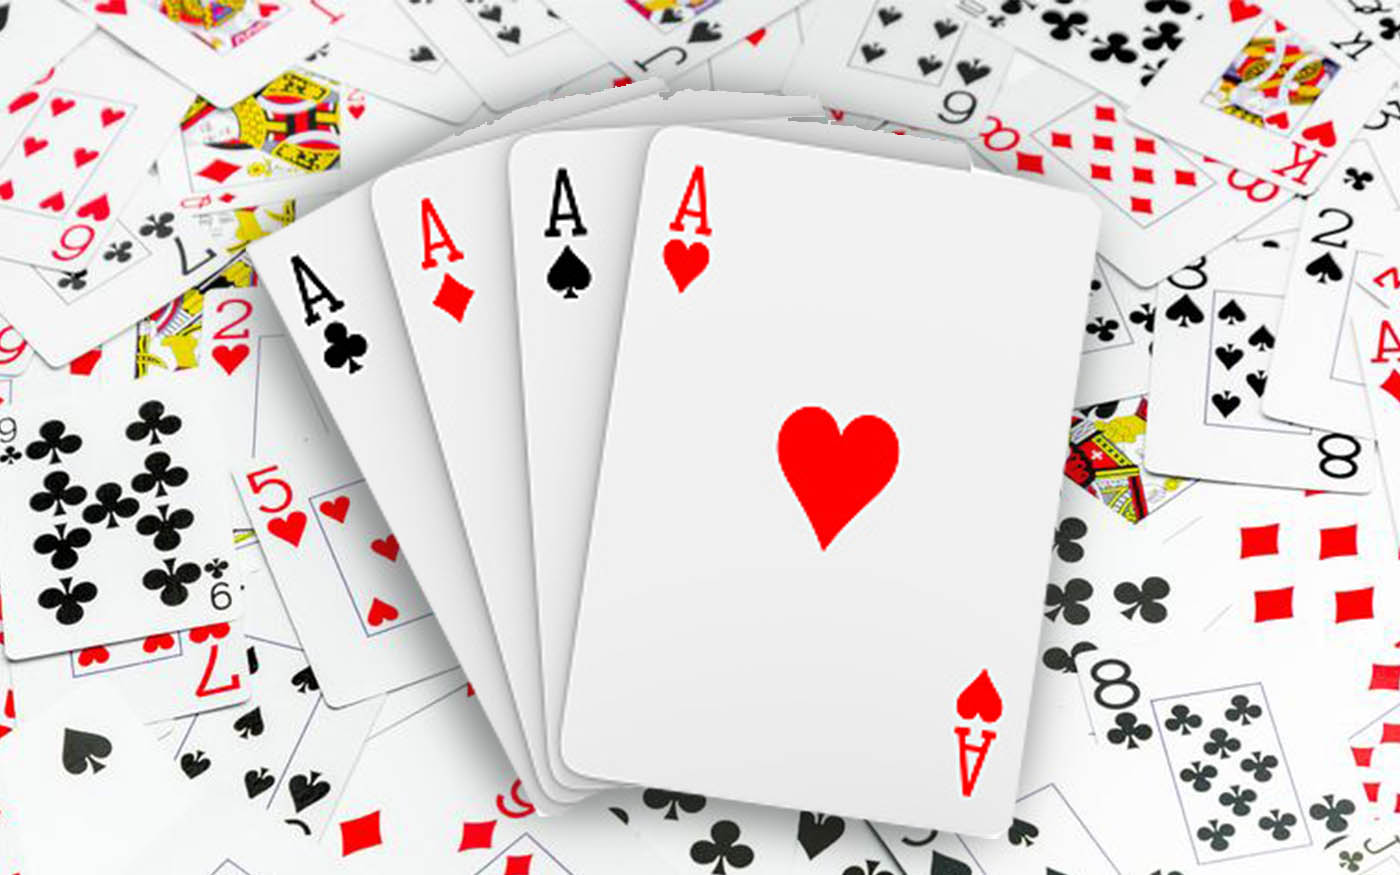 How Many Clubs Are In A Deck Of Cards